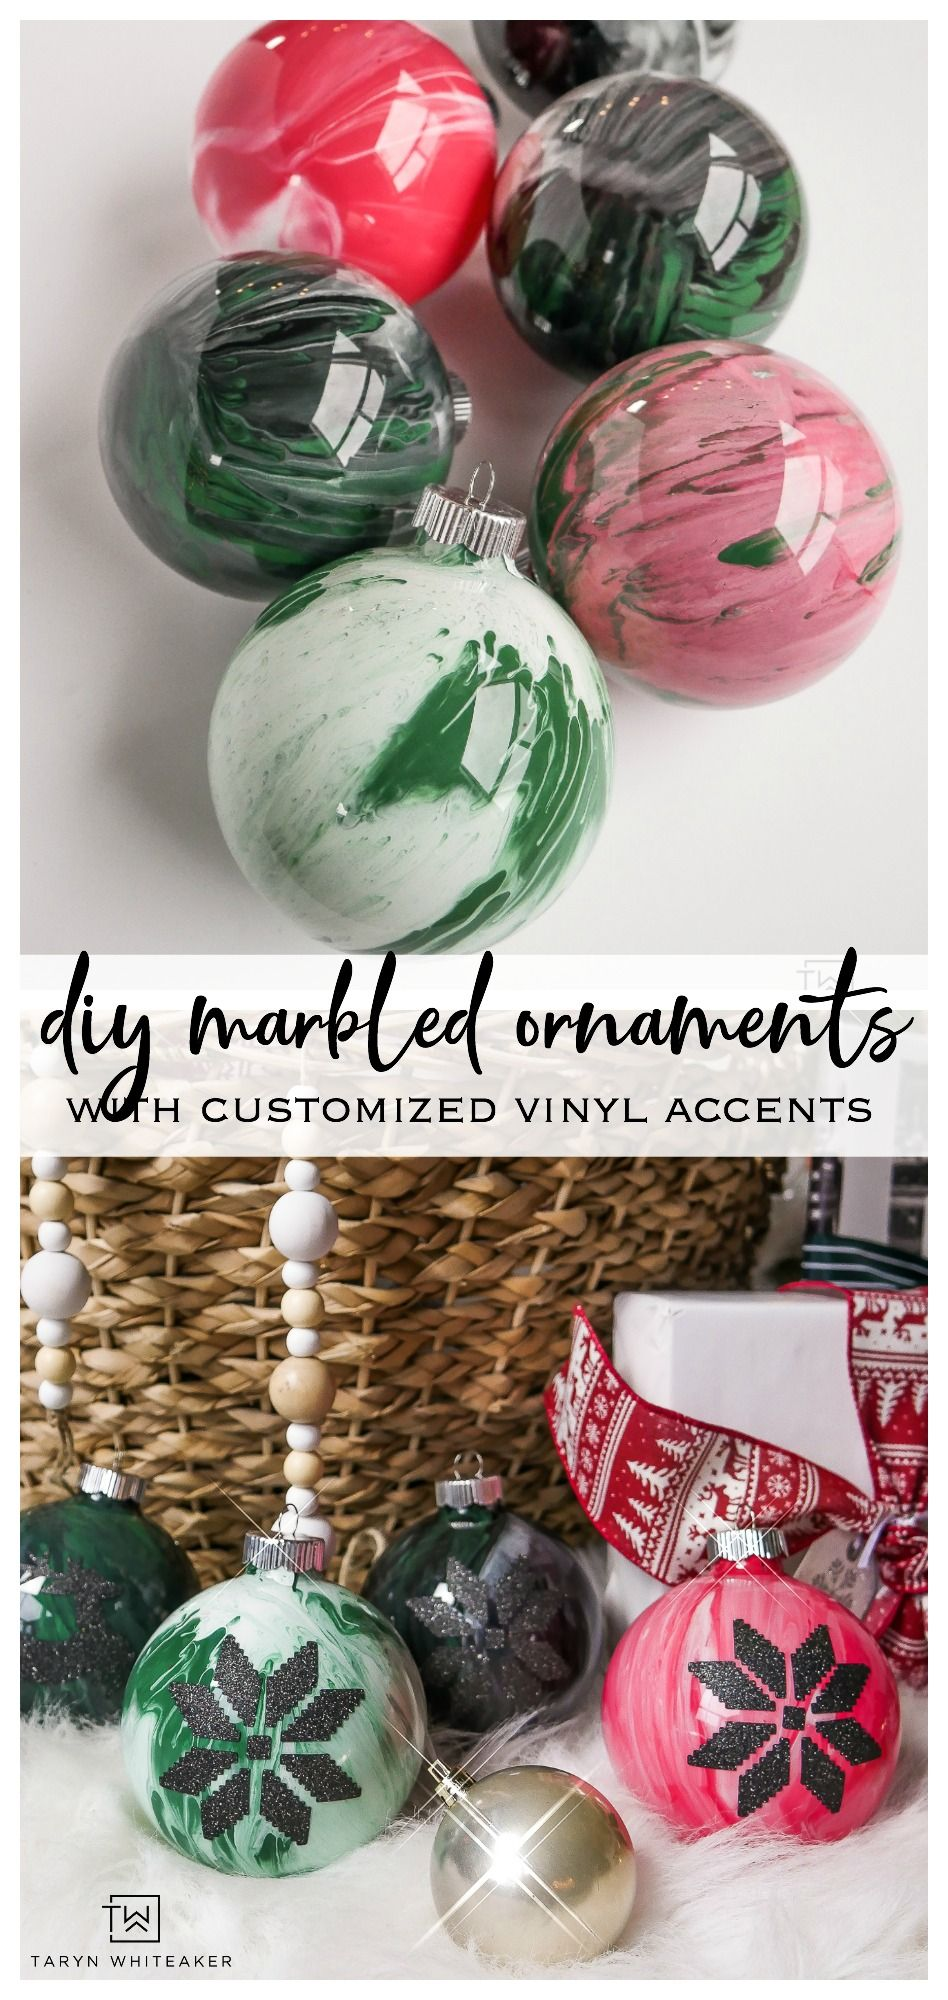 How To Make DIY Marbled Ornaments Glitter crafts